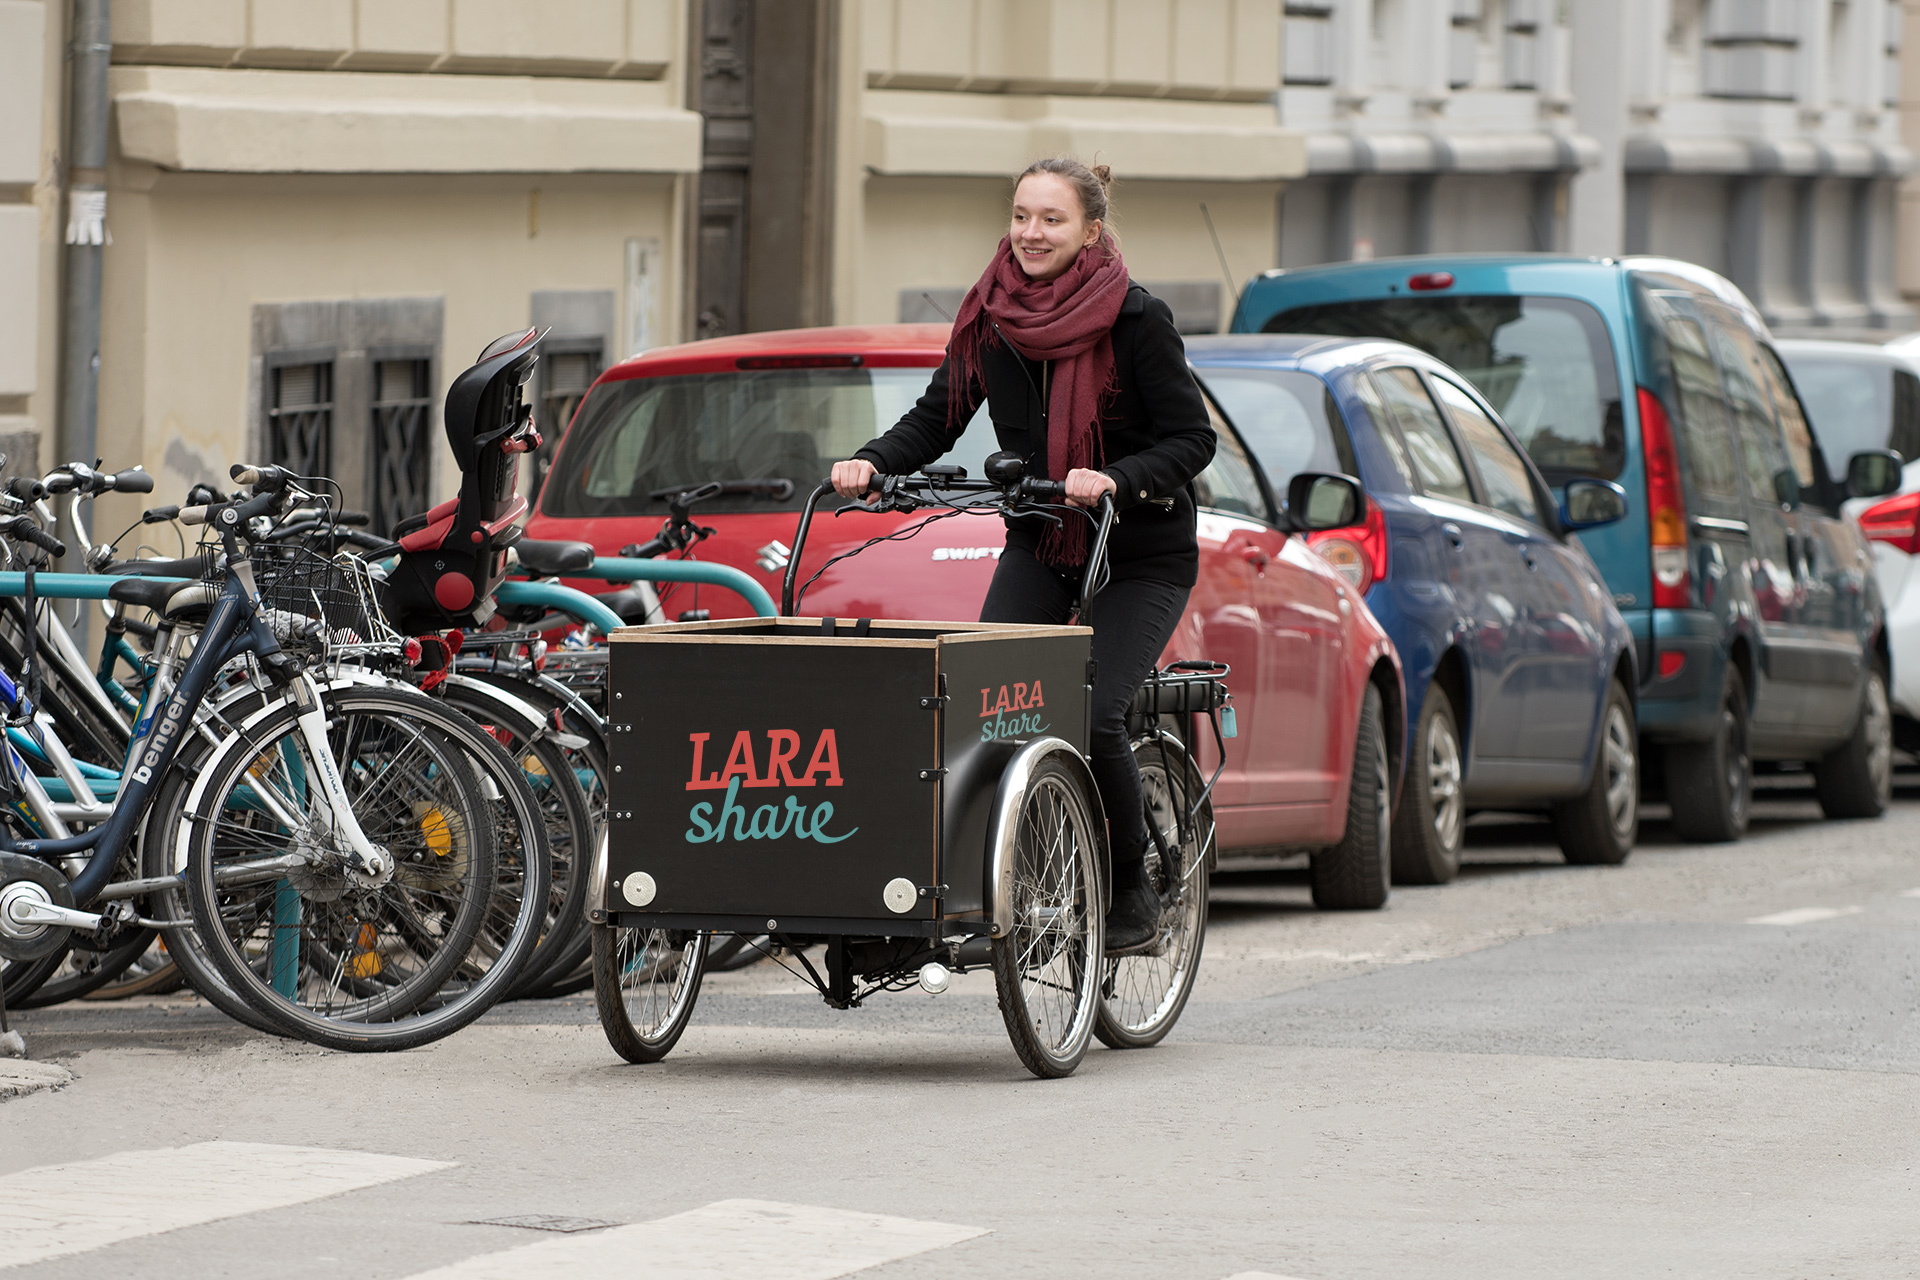 Cargo bike sharing in the trial phase